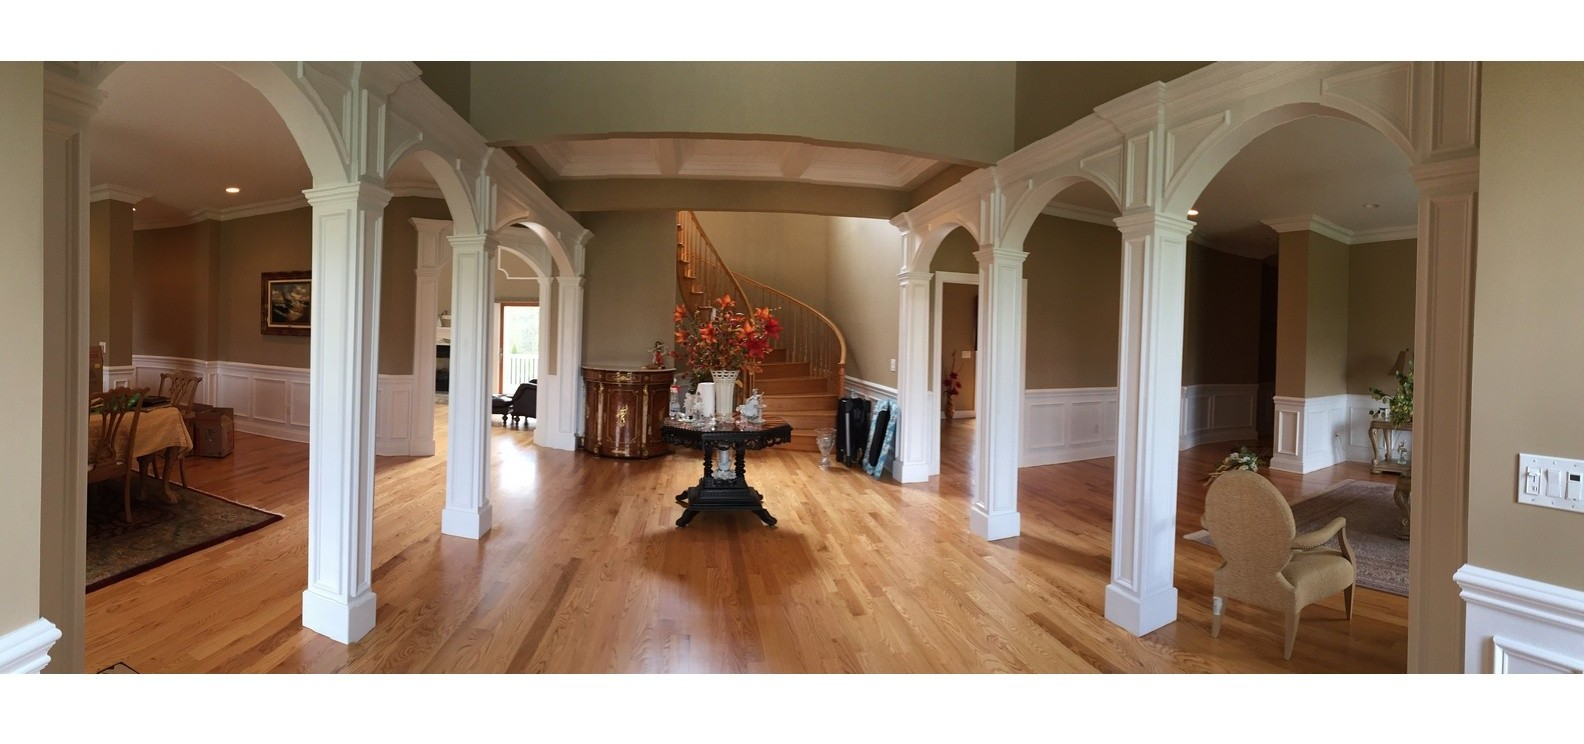 Arches | Custom Interior Arches | Crown Molding NJ LLC